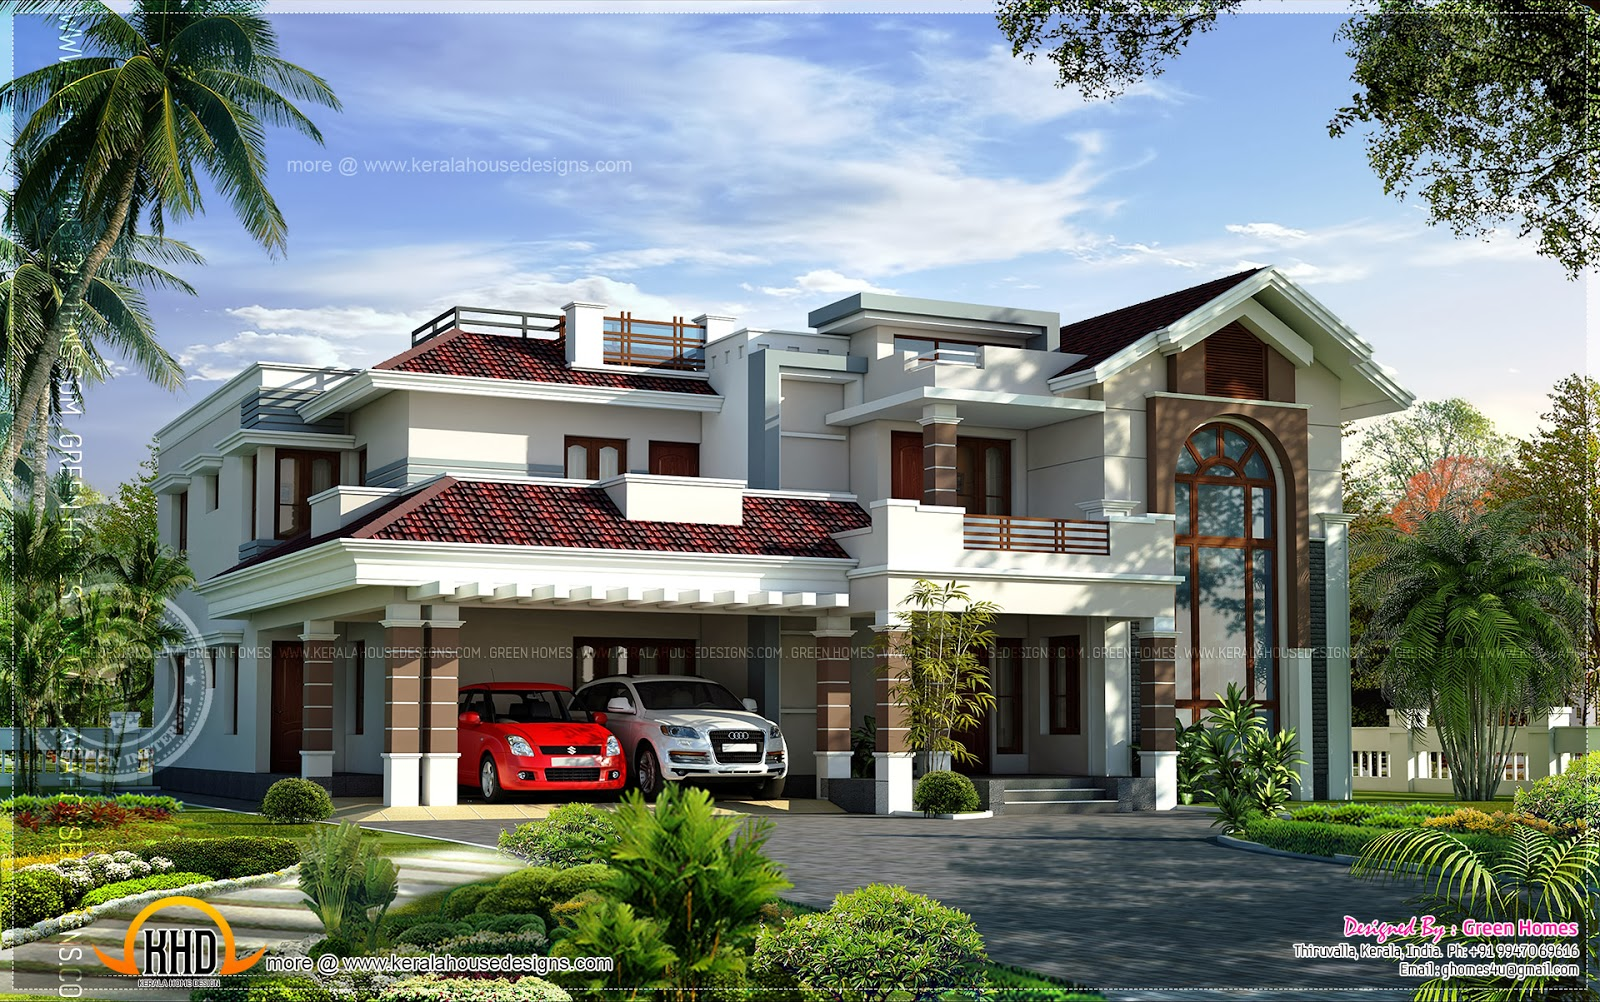 400 square yards luxury villa design Kerala home design and